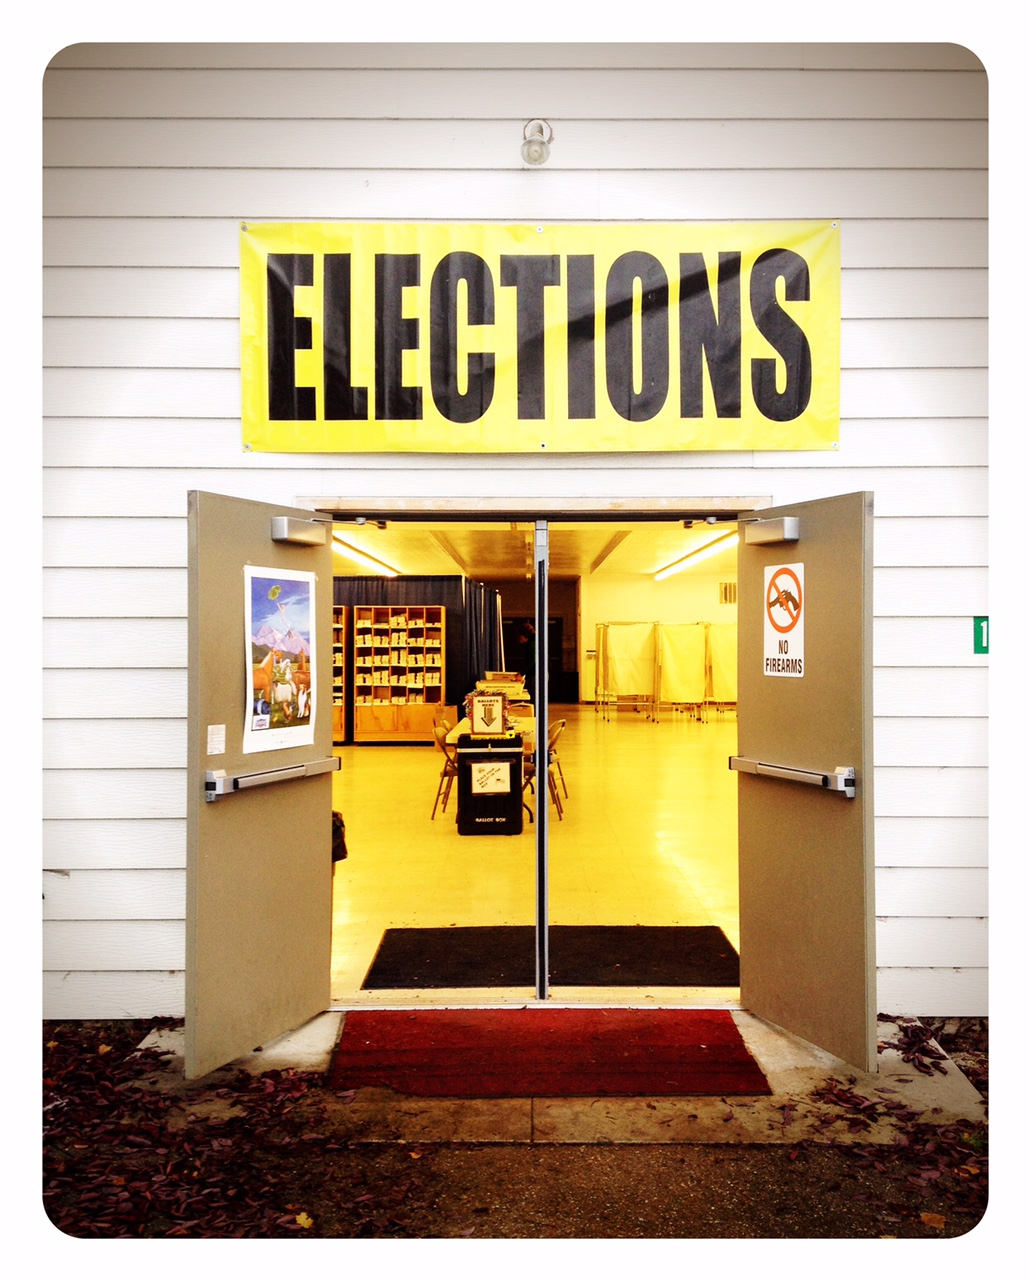 Entrance to the Election Center at the Missoula County Fairgrounds.